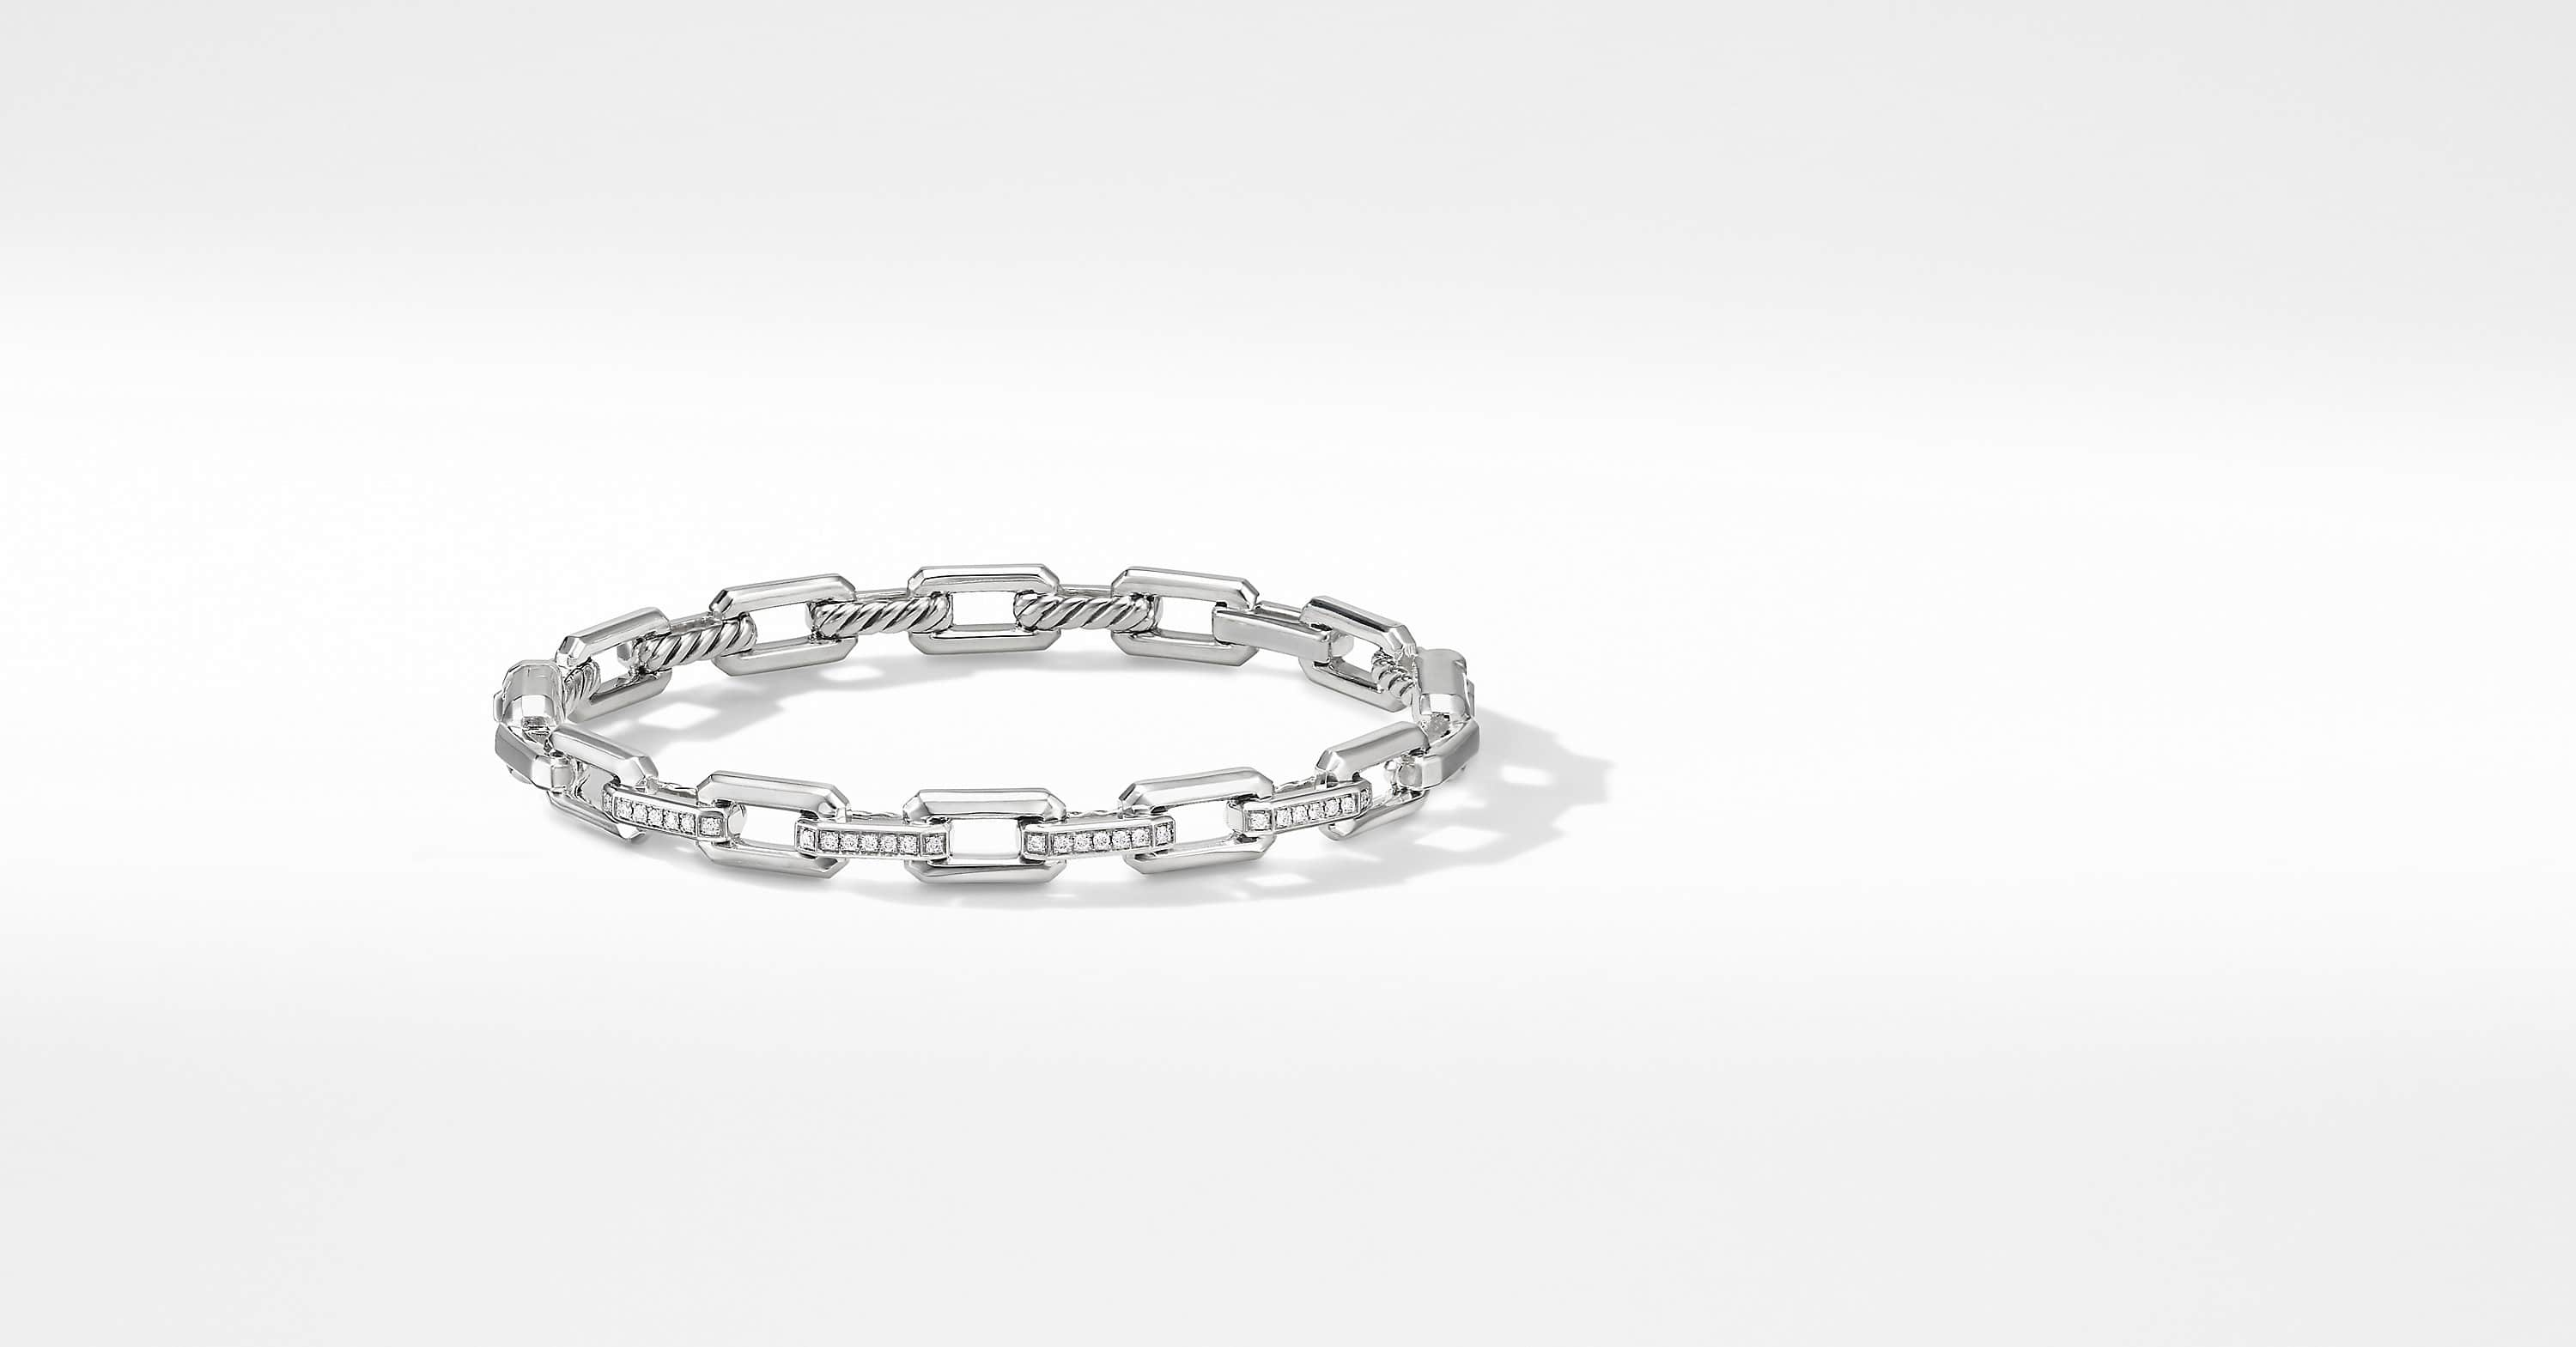 Bracelet à maillon Stax avec diamants